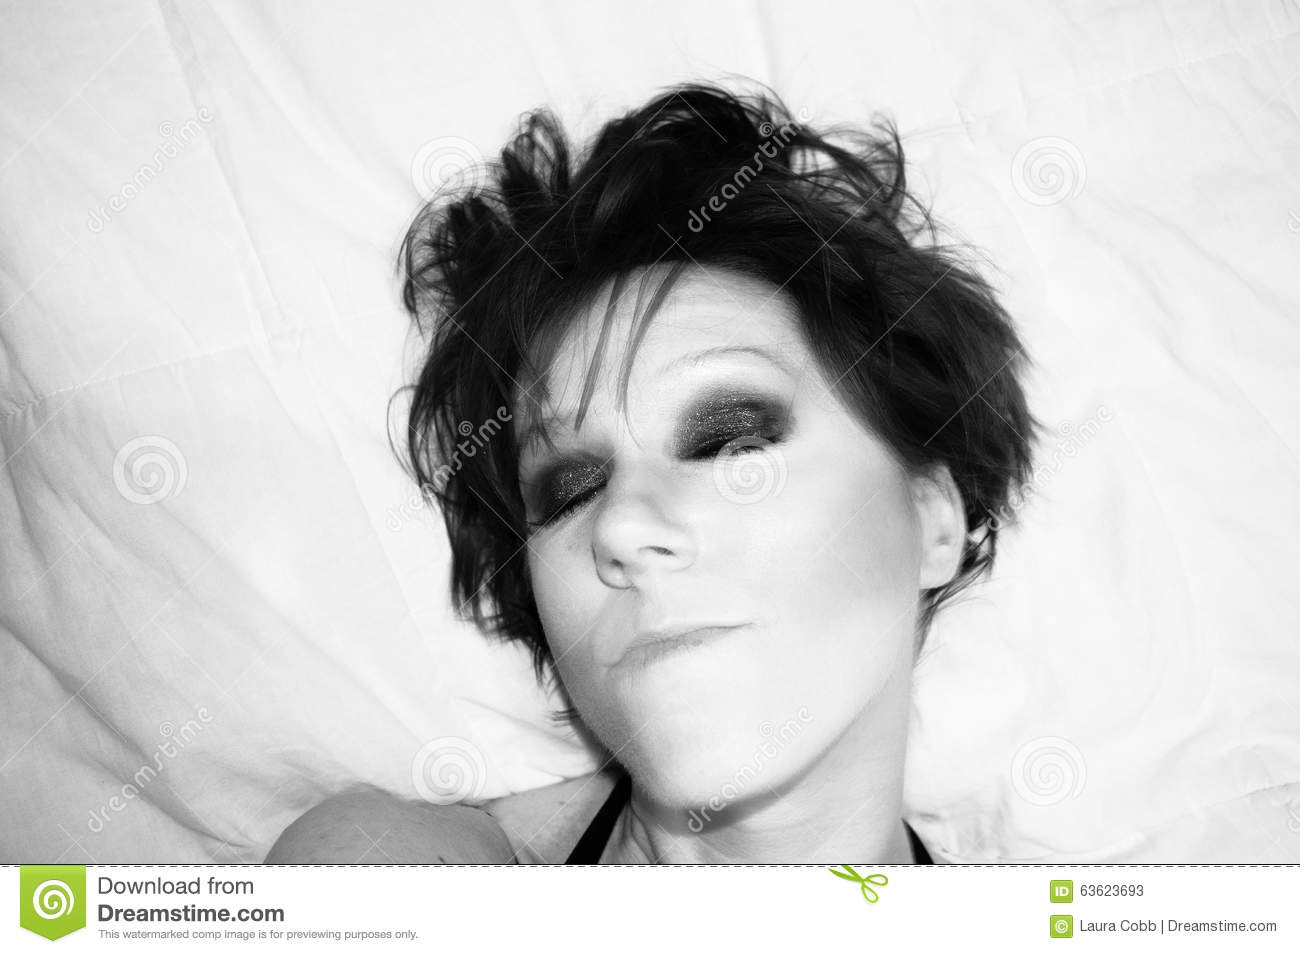 A high contrast capture of the face of a woman in black and white with intense and dramatic eyes wearing dark eyeshadow